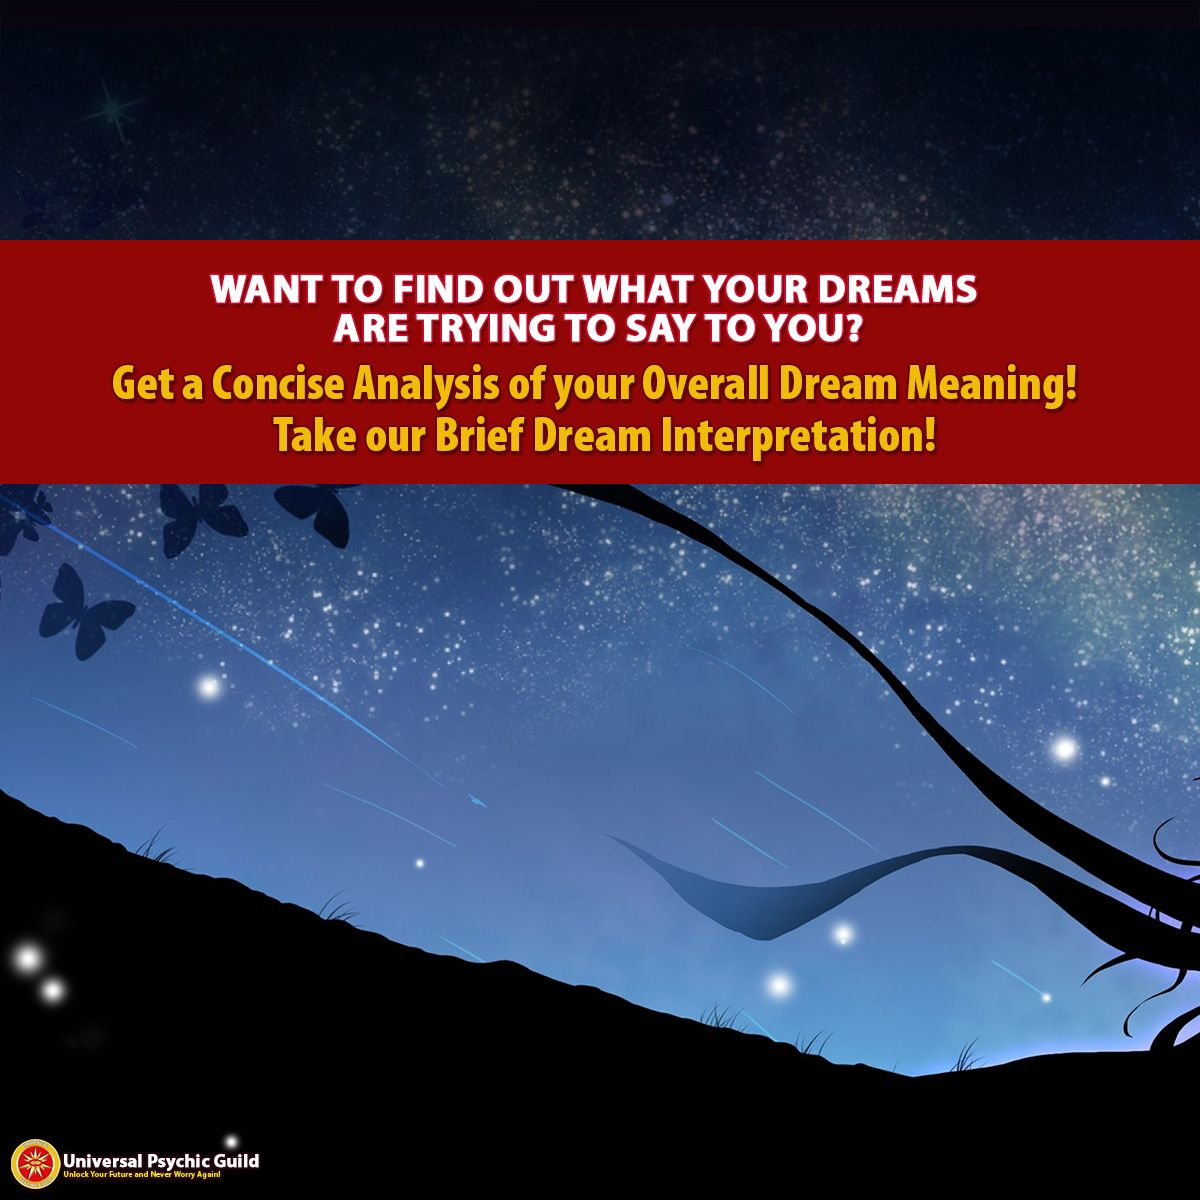 What do our dreams say